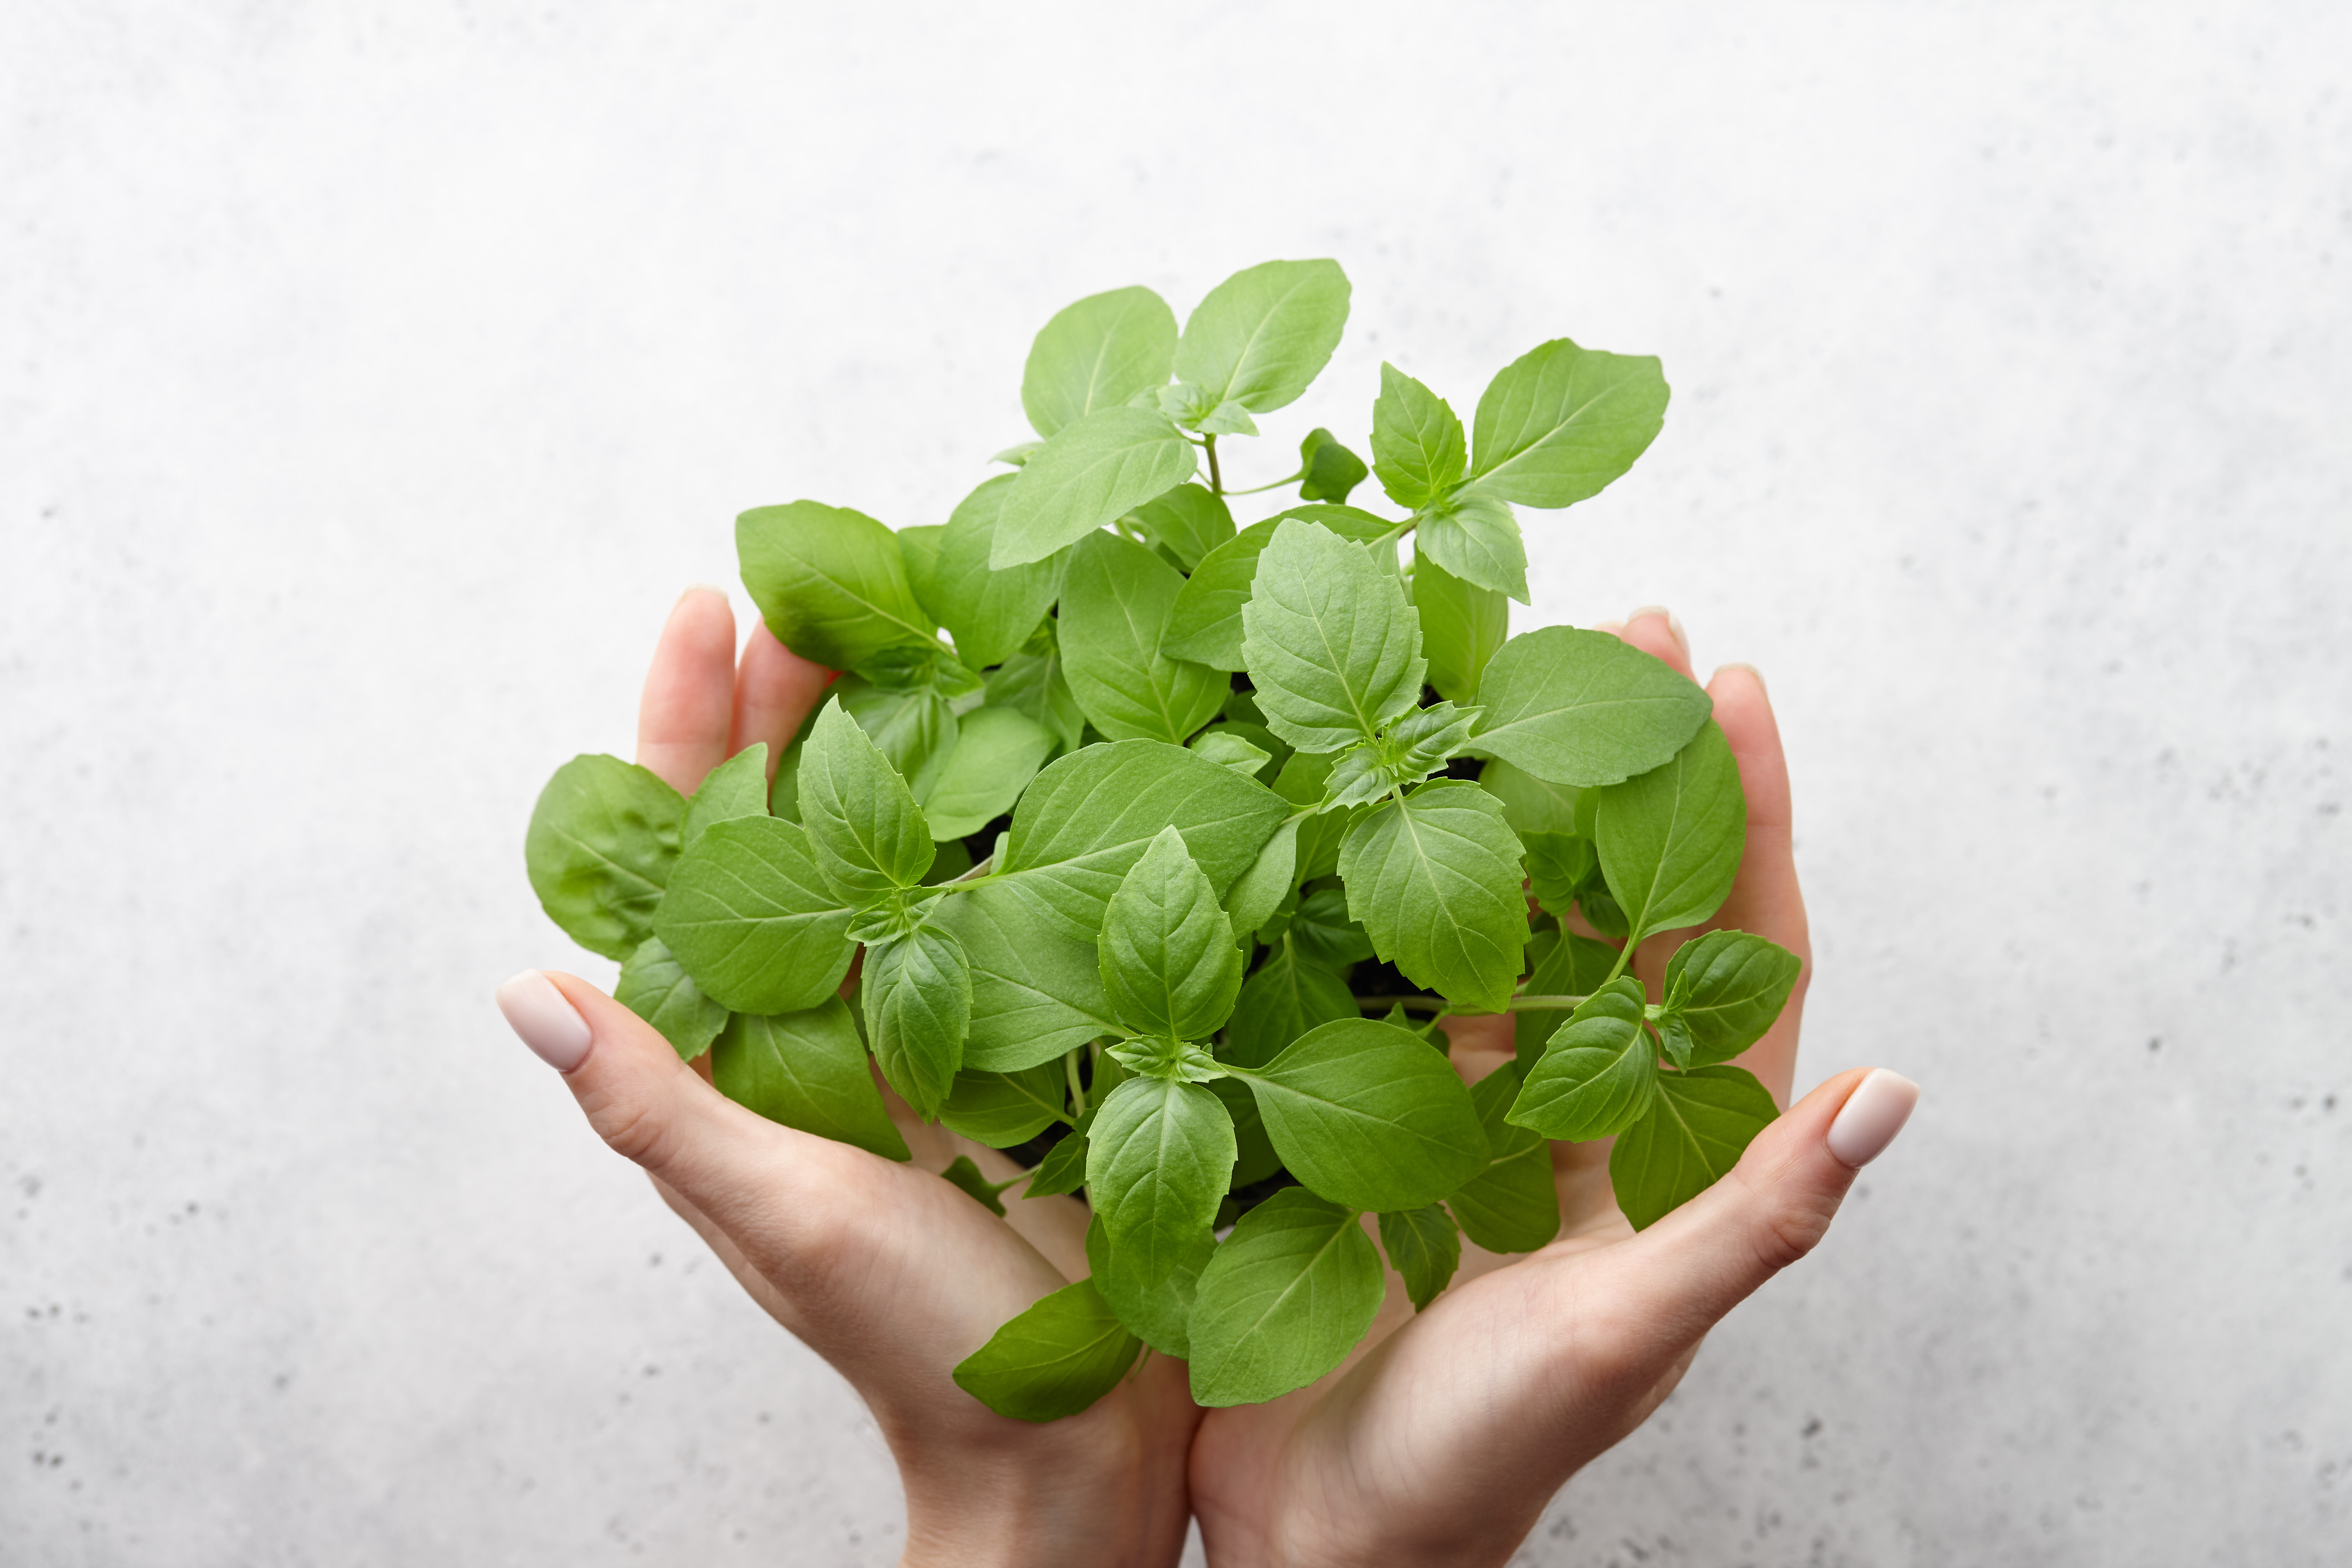 Woman's hands holding fresh green basil leaves on white stone background. Close up view.